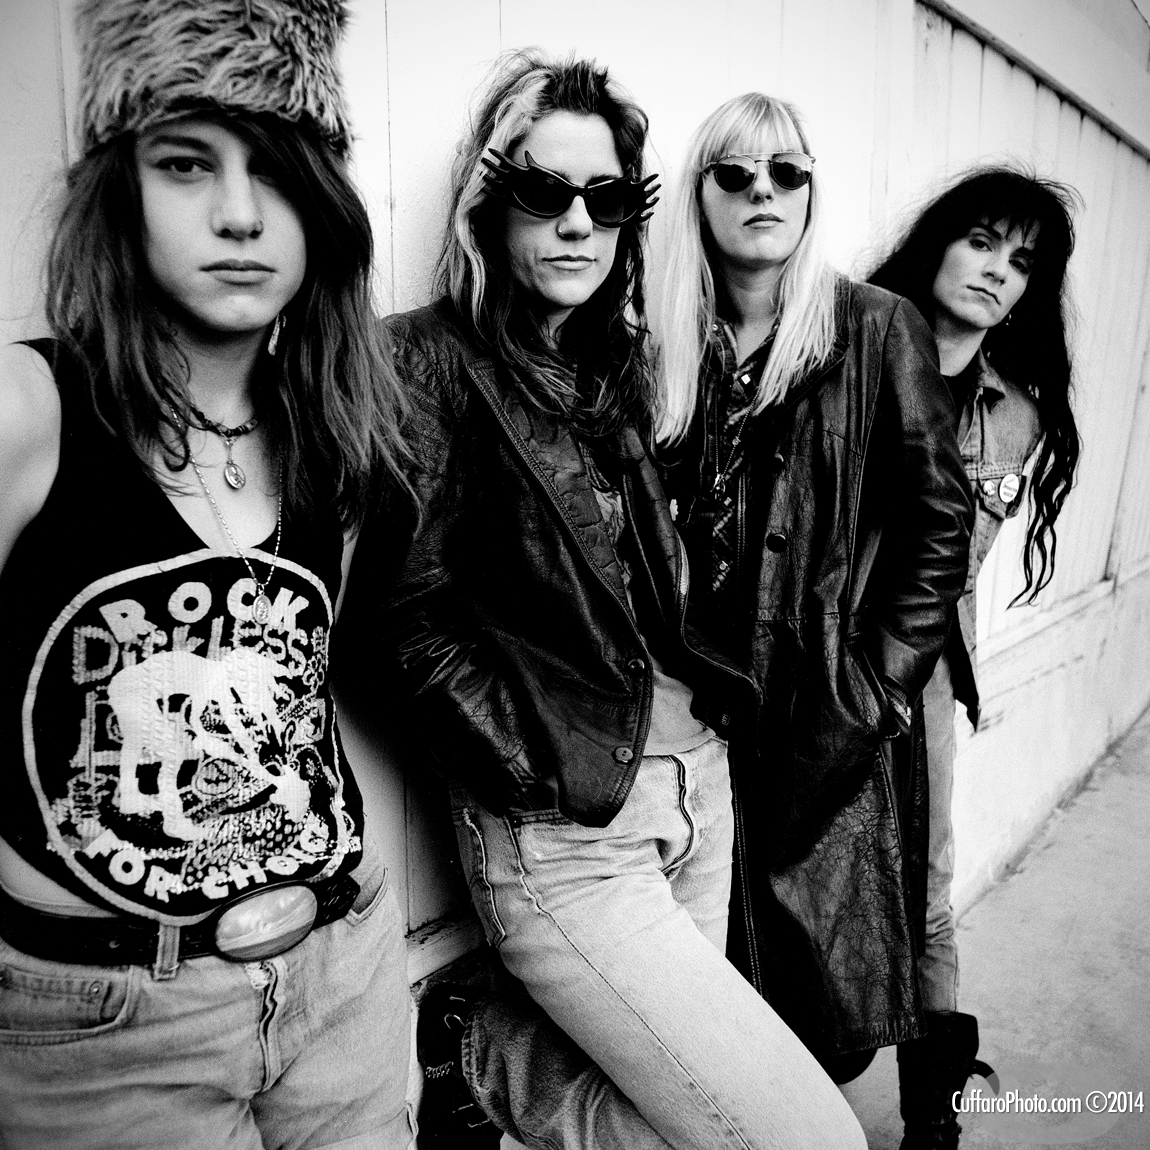 L7 – Thursday January 17, 1991, UCLA Cooperage Hall